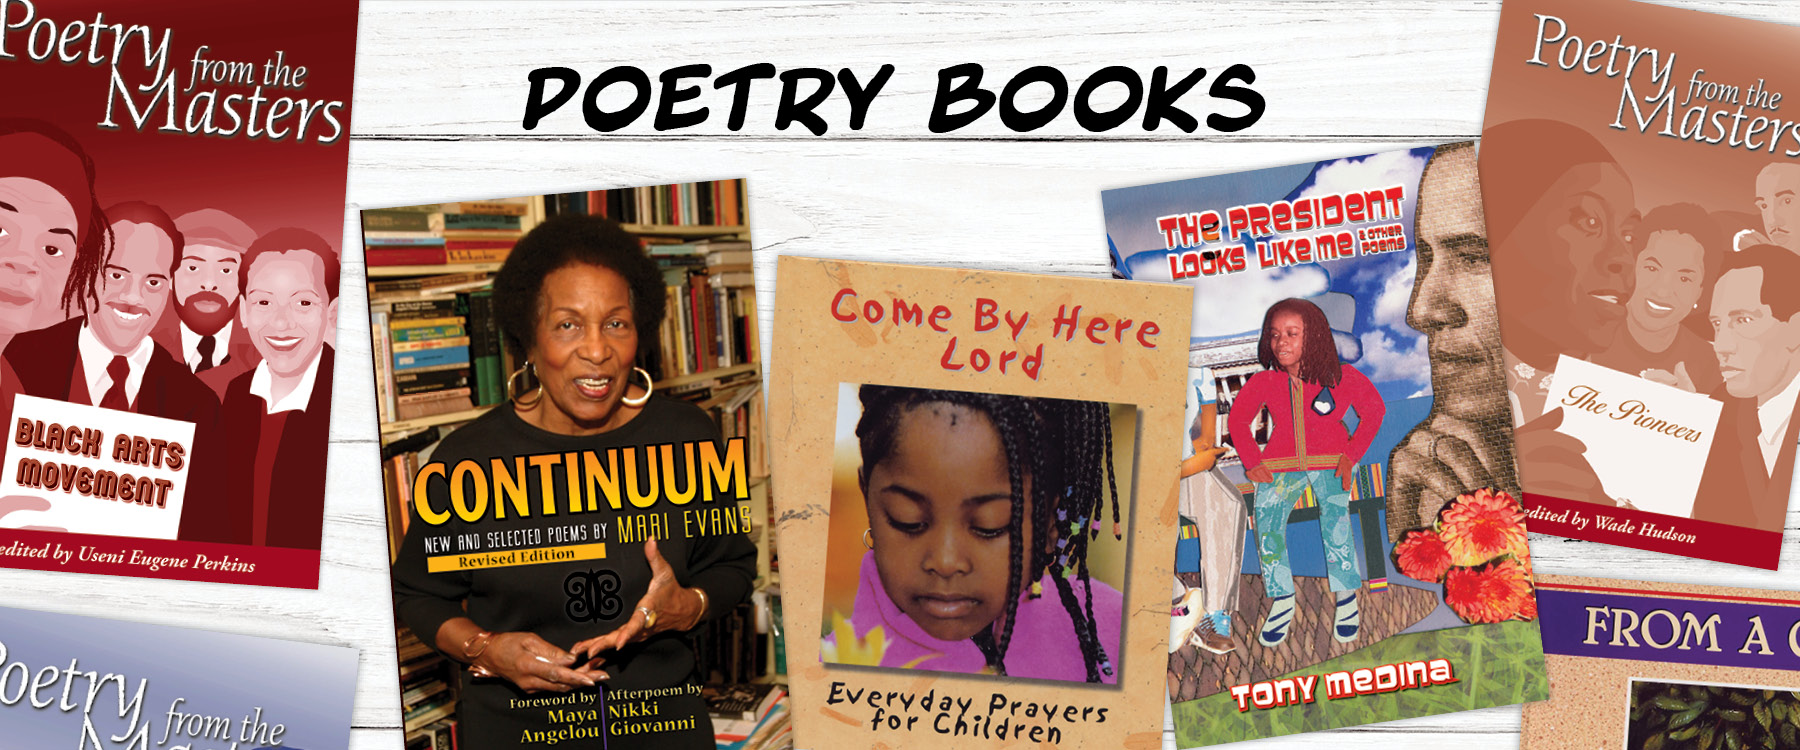 banners-just-us-books-poetry-books.jpg